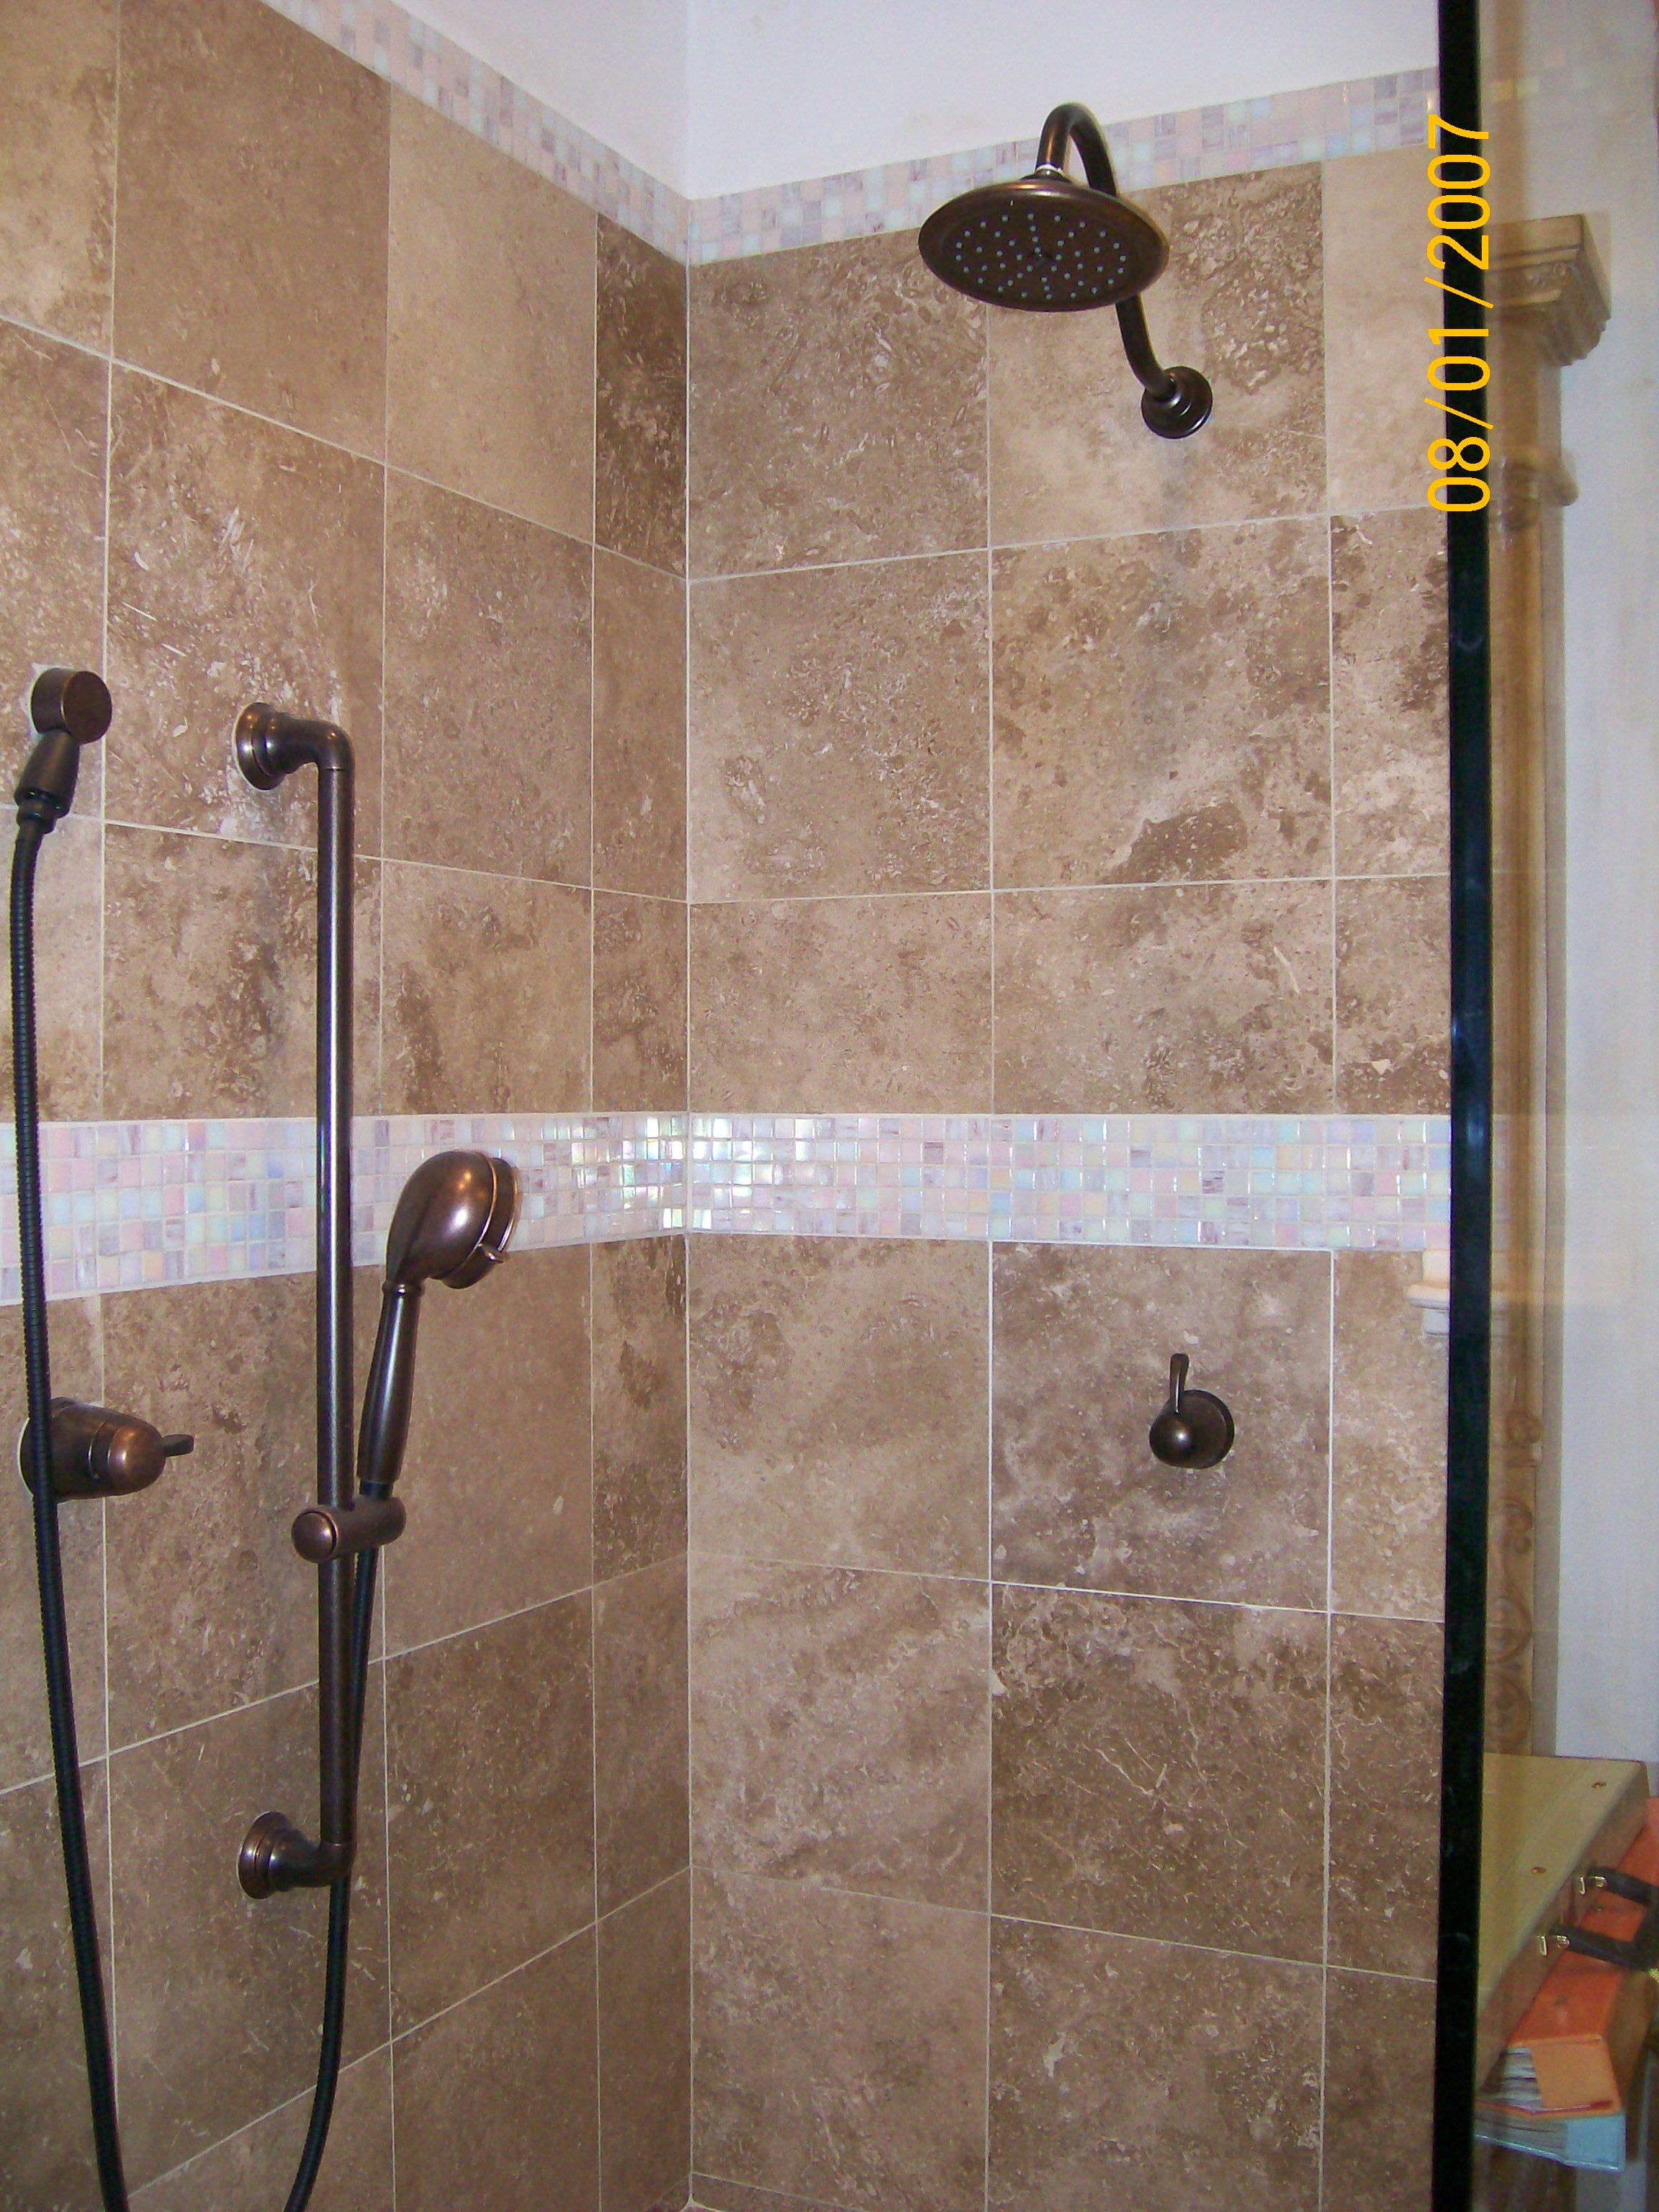 Tiled Bathroom Shower Ceramic Tiled Shower with Iridescent Glass